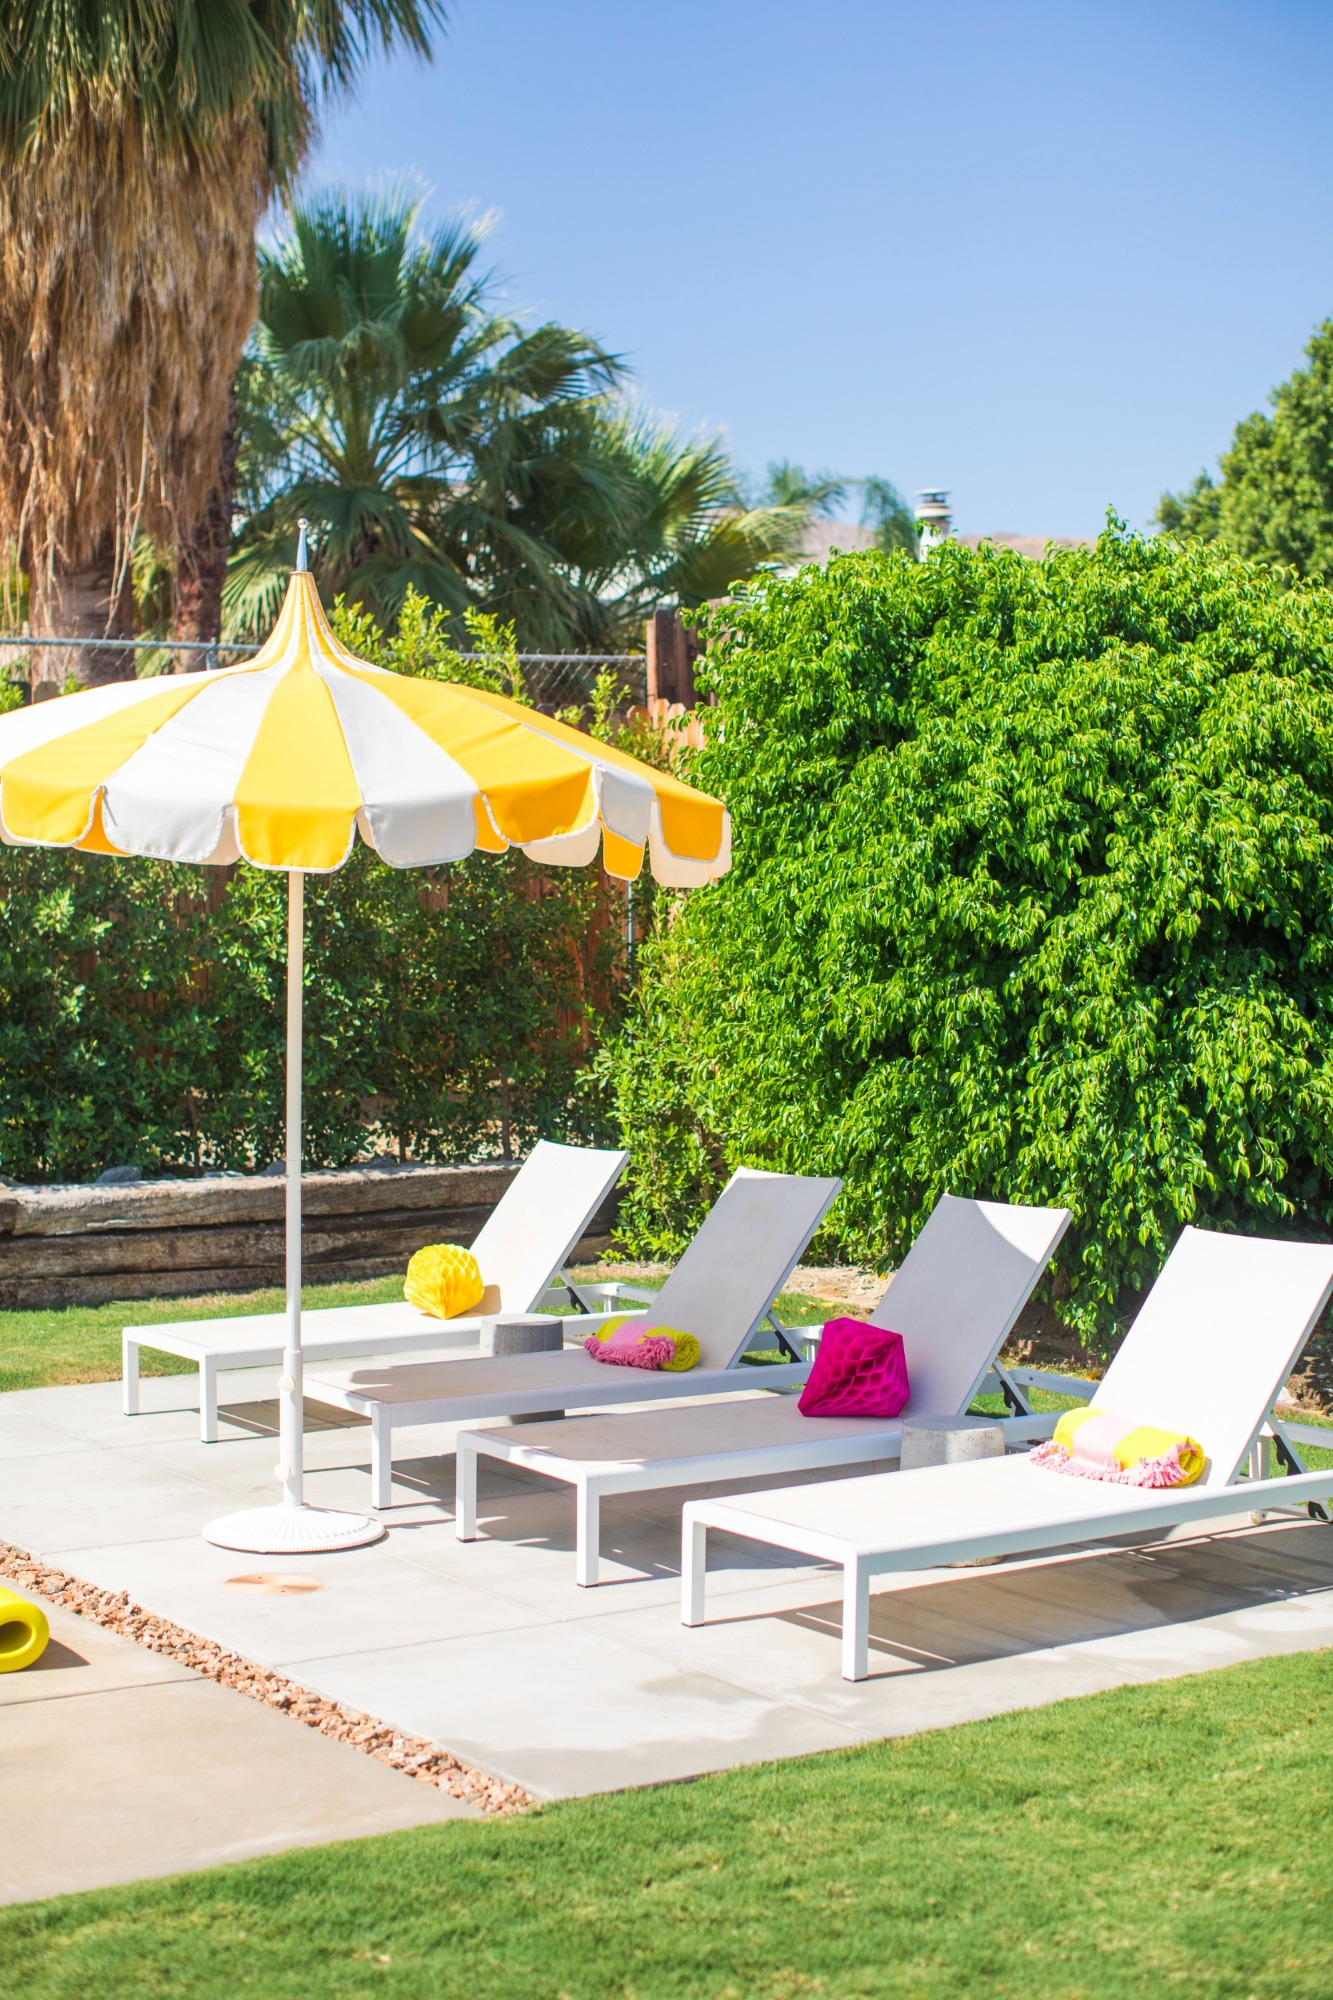 Poolside Umbrella Chairs from Bachelorette Brunch by But First Party and Bonjour Fete | Black Twine